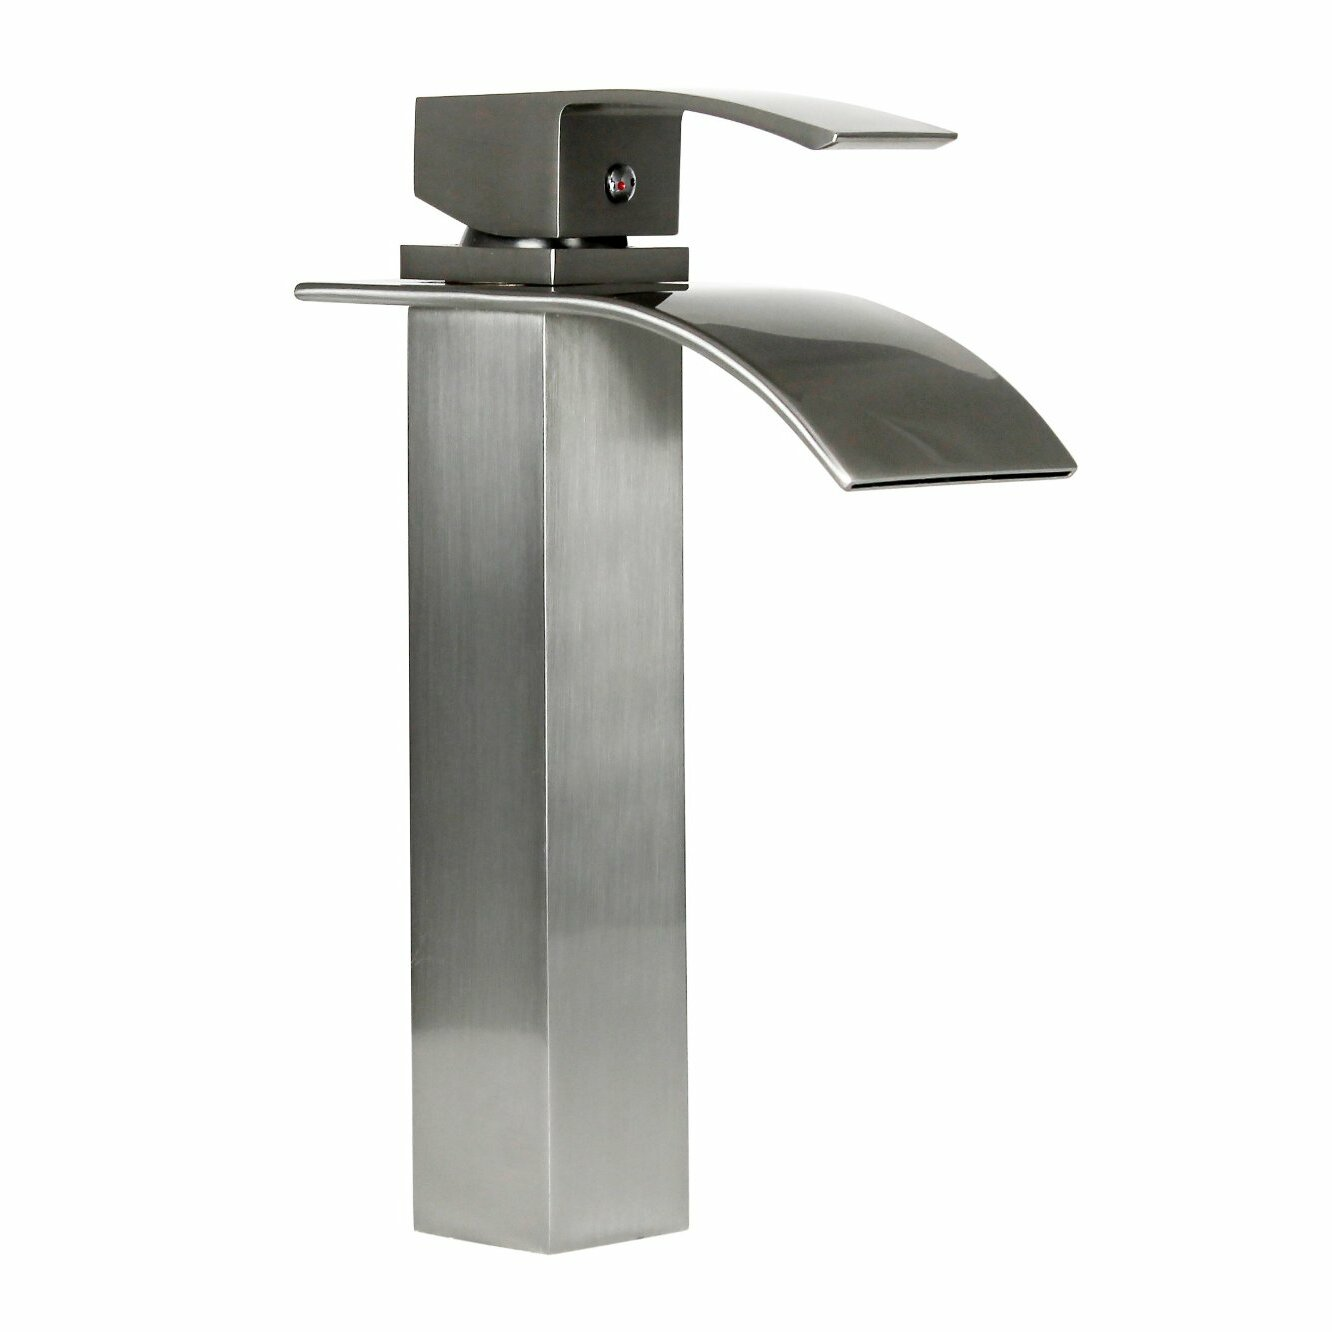 Dyconn Faucet Wye Modern Bathroom Vessel Sink Bathroom Faucet & Reviews